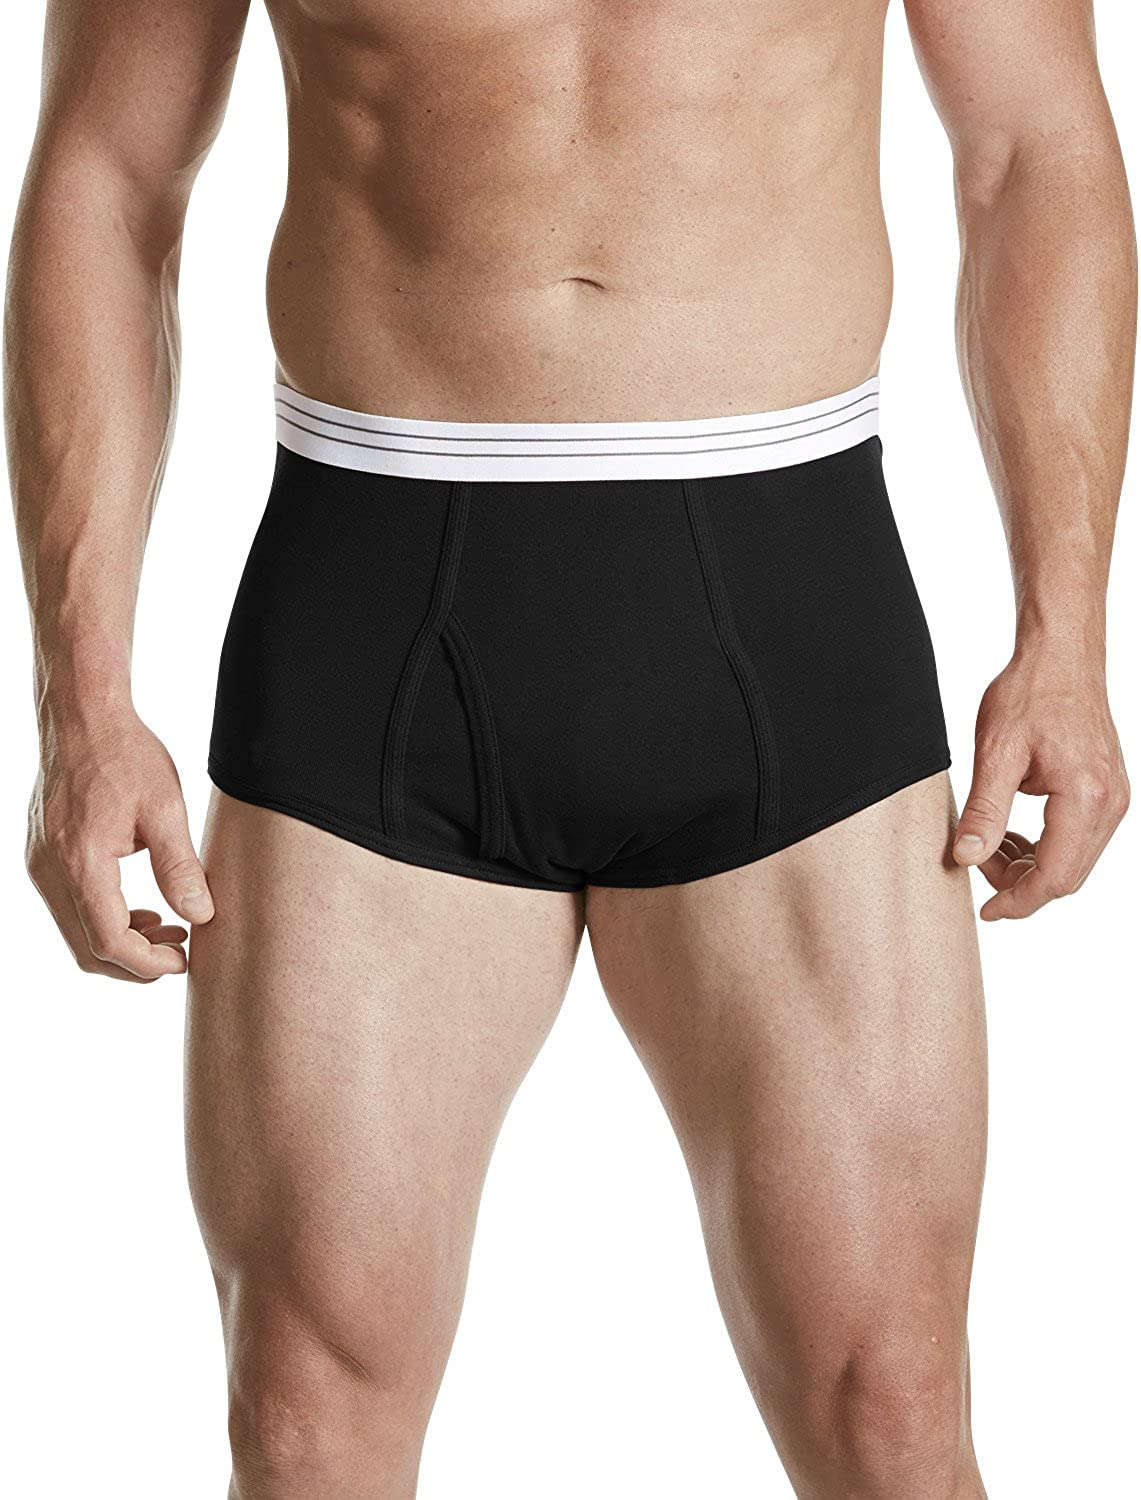 Harbor Bay by DXL Big and Tall 3-pk Color Briefs